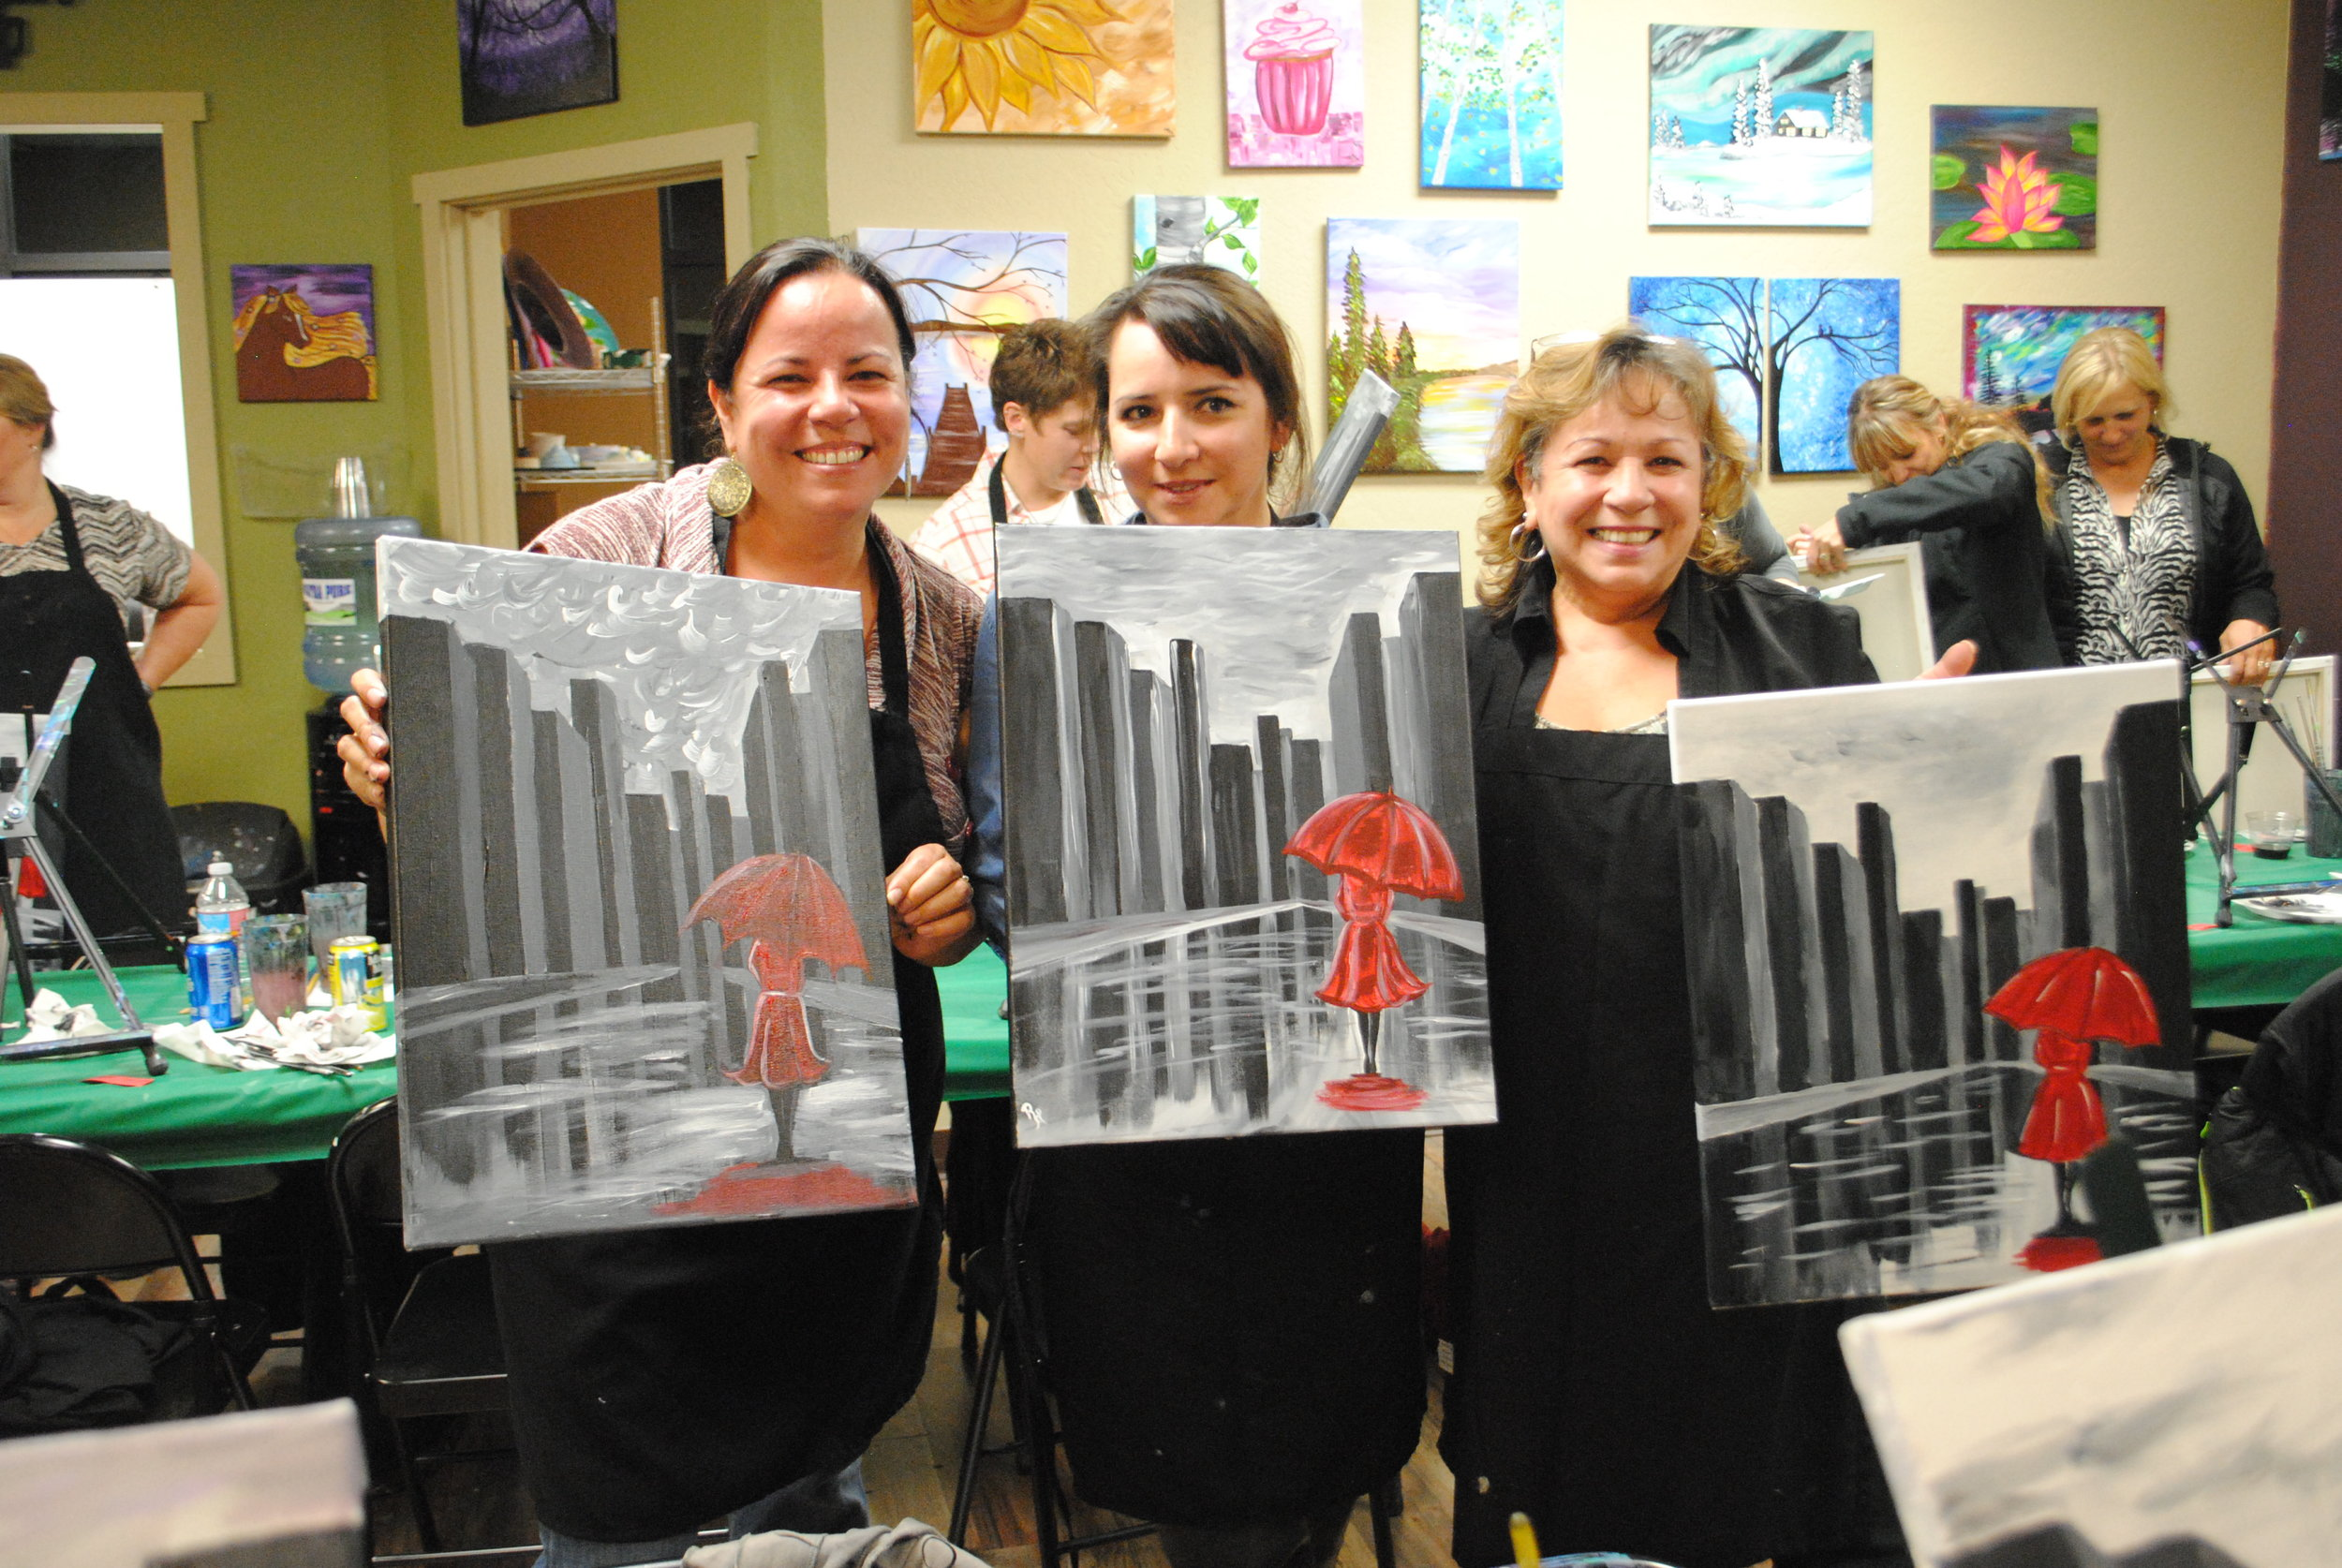 ART 4 JOY - Sip n' Paint - Central Point - What to do in Southern Oregon - Things to do - Events - Girls Night - Family - Kids (38).JPG